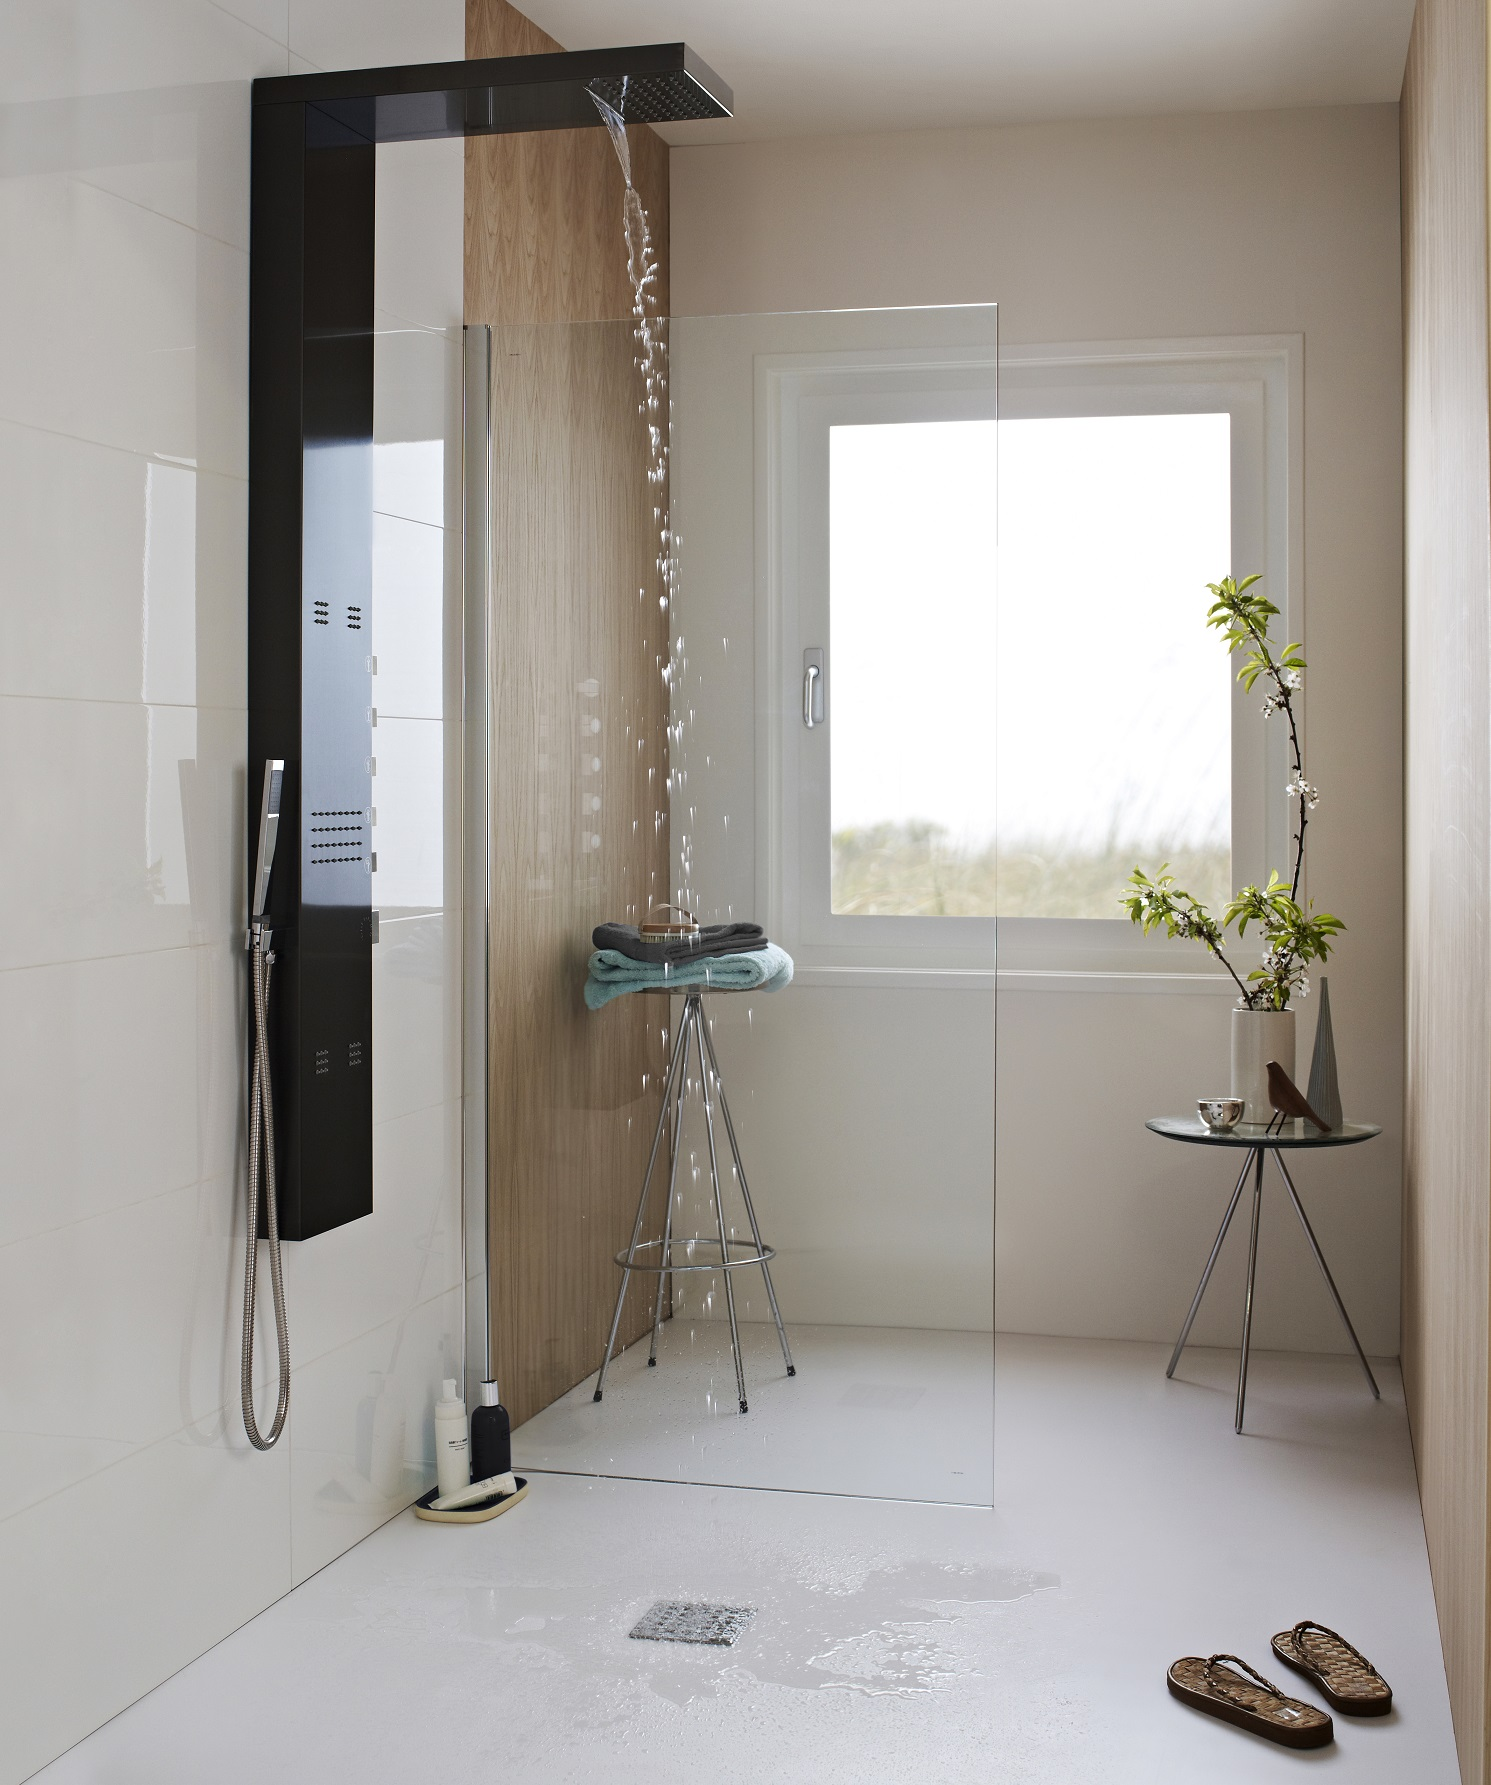 How To Make A Wet Room Big Bathroom Shop